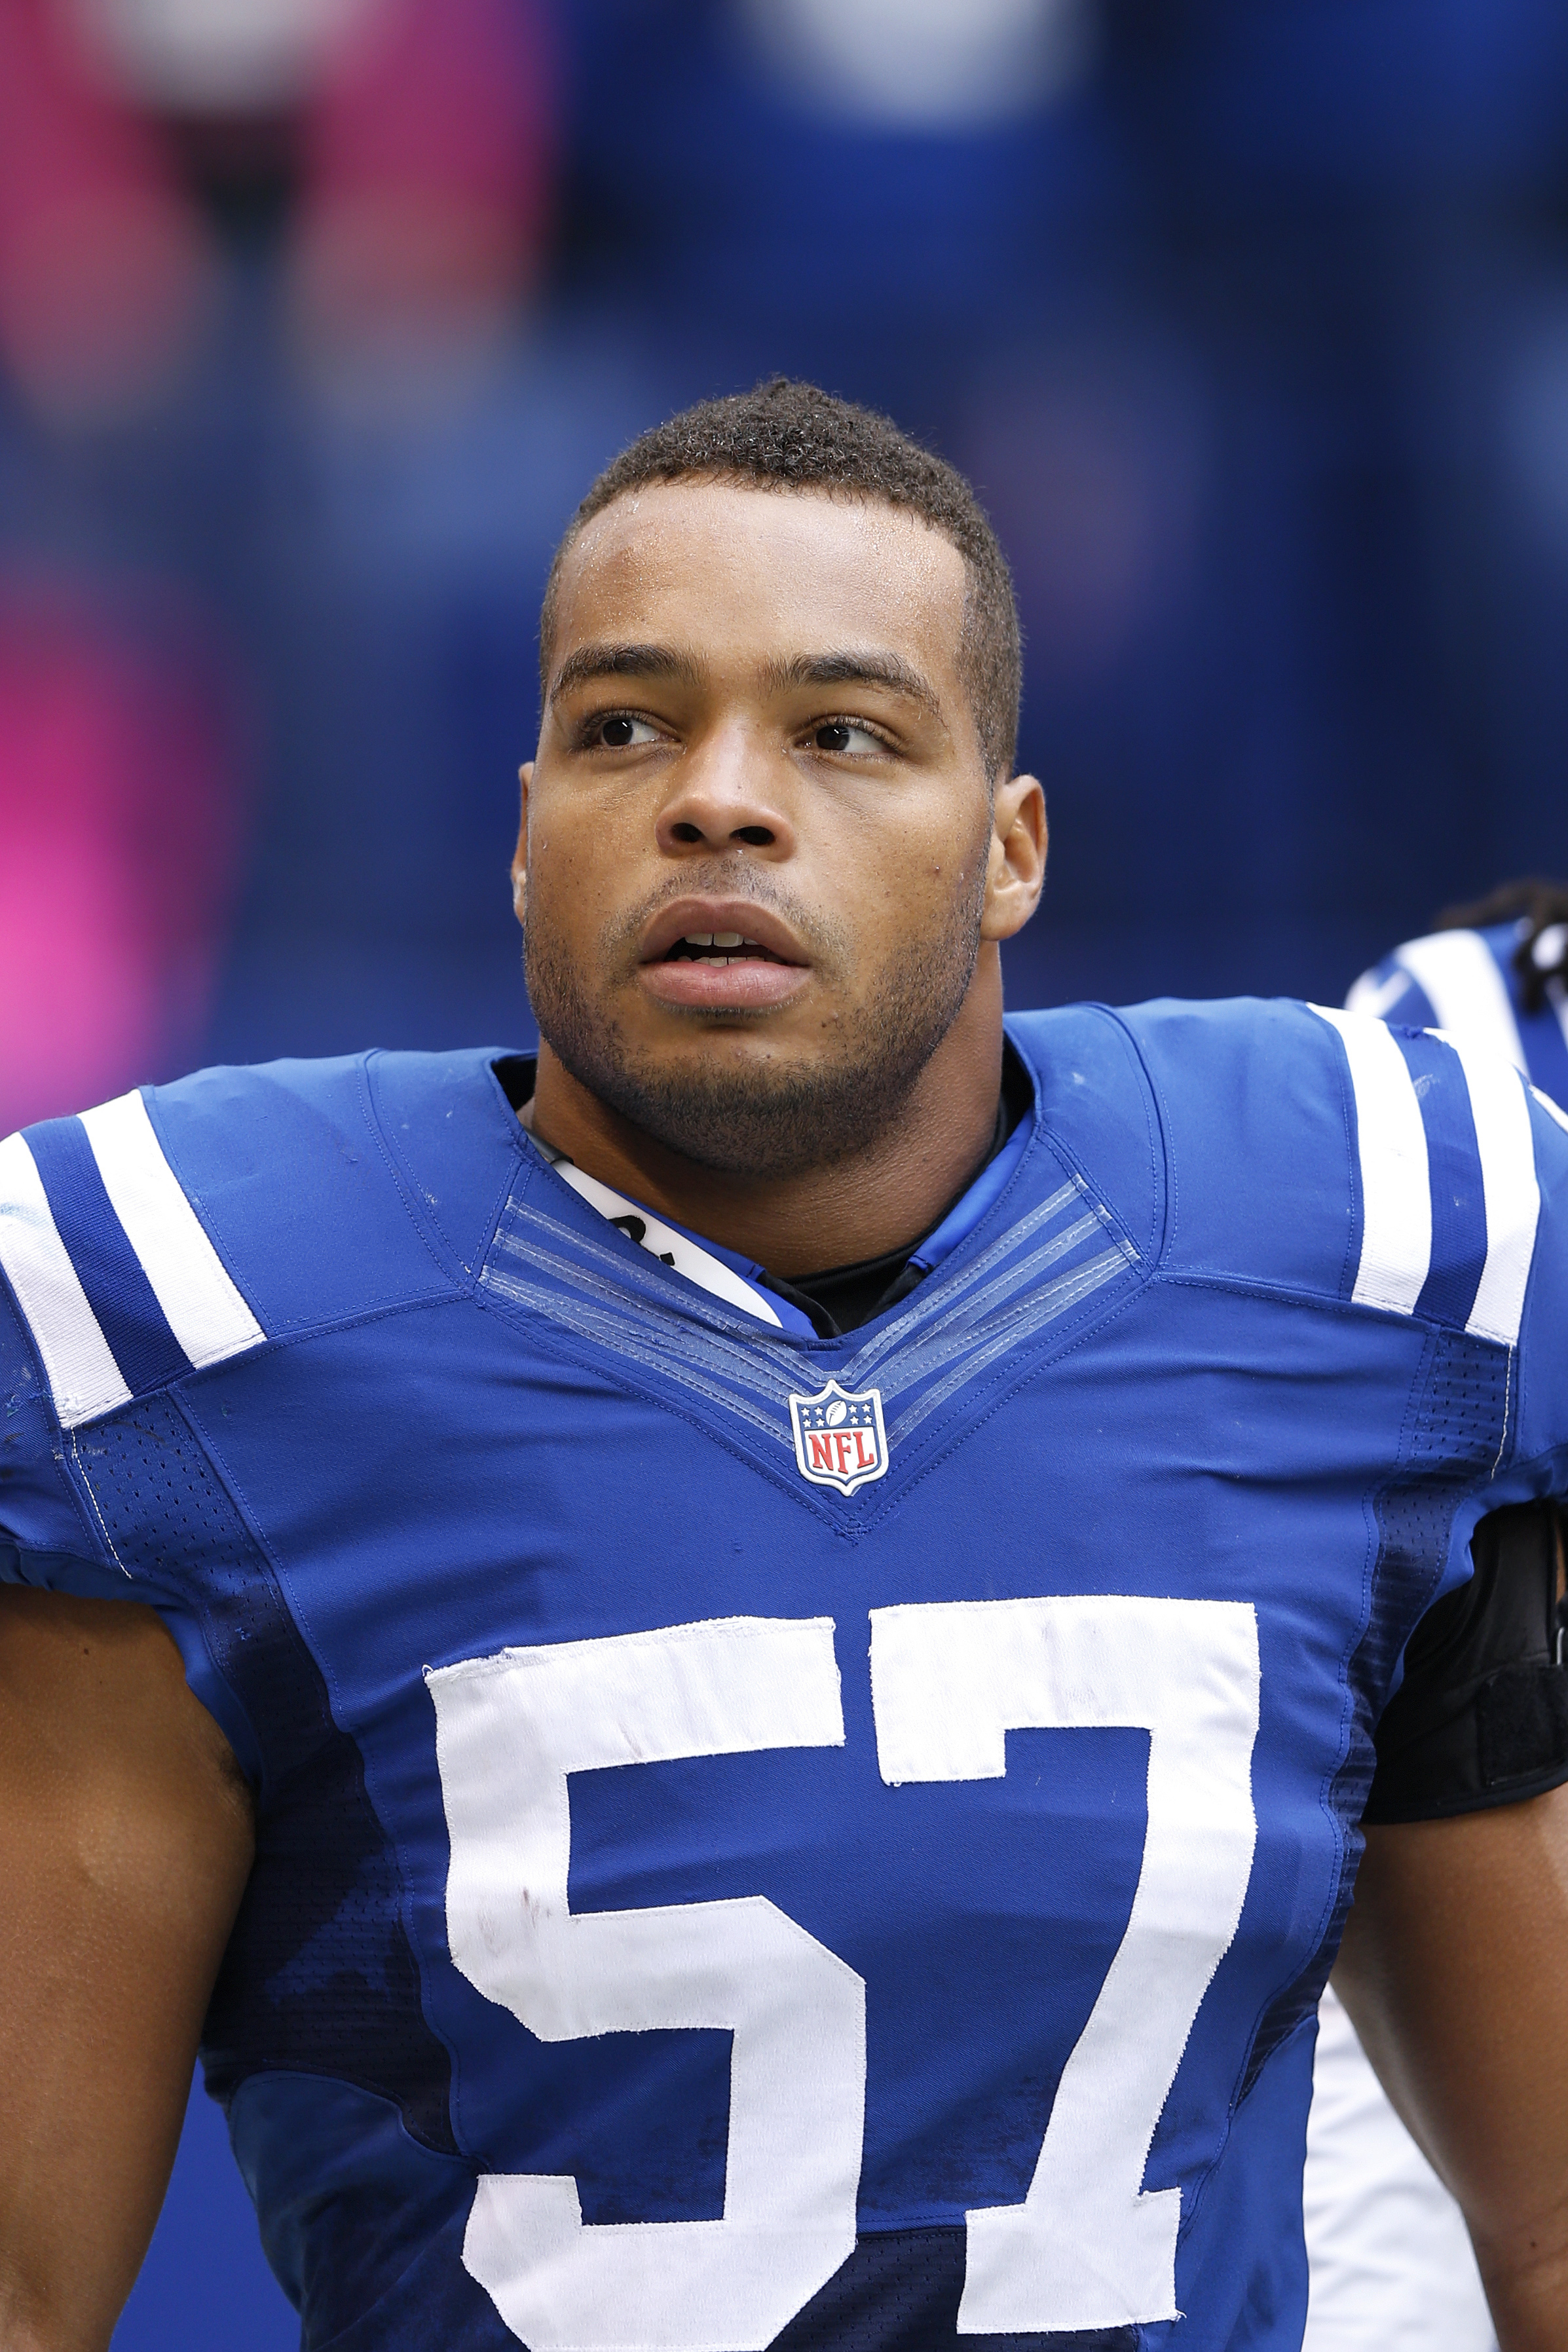 Josh McNary #57 of the Indianapolis Colts looks on against the Baltimore Ravens during the game at Lucas Oil Stadium on Oct. 5, 2014 in Indianapolis.